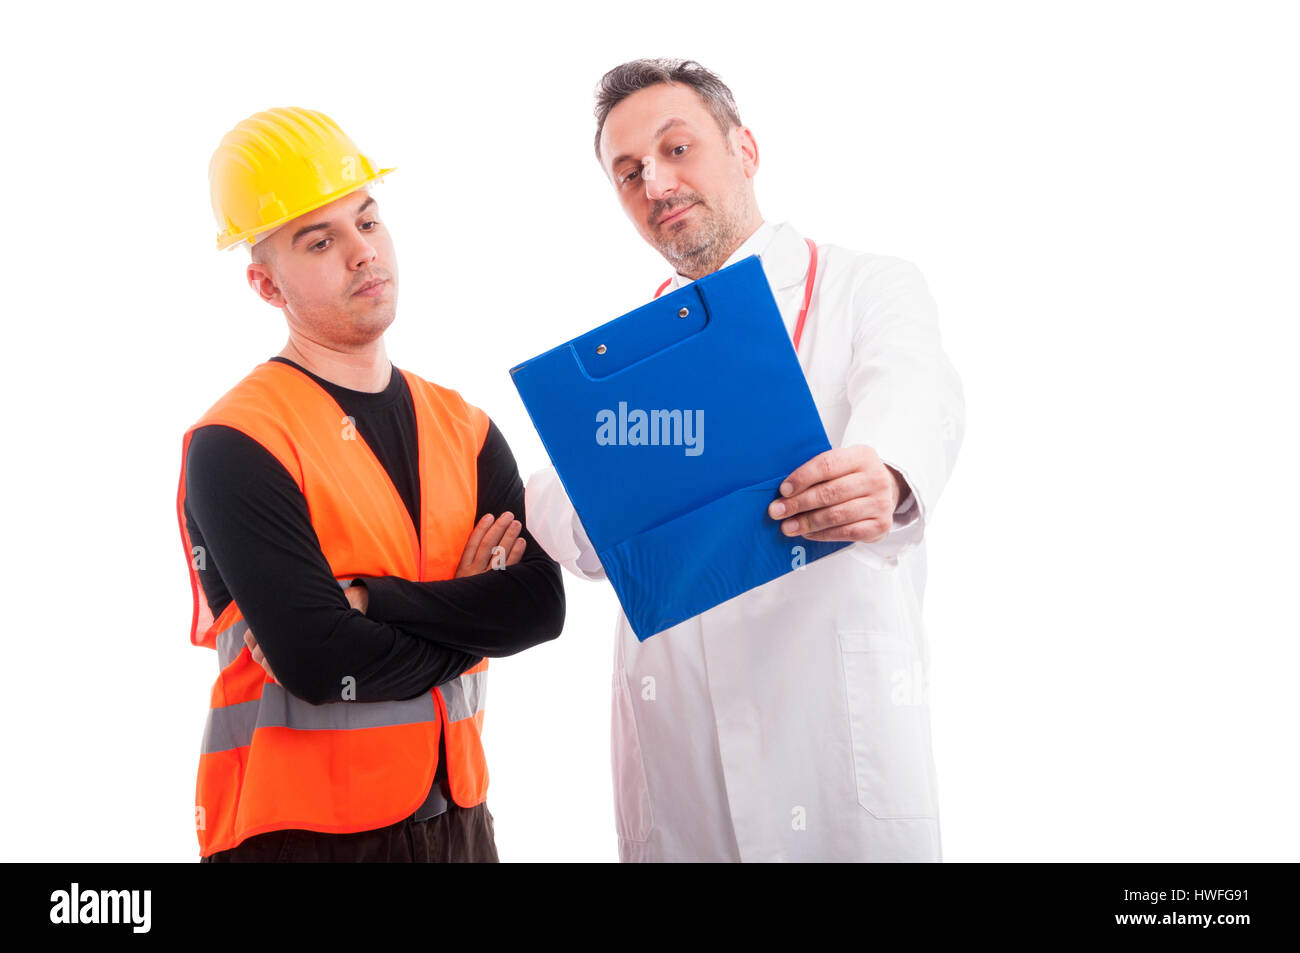 Doctor showing something on clipboard to constructor and looking surprised isolated on white background Stock Photo